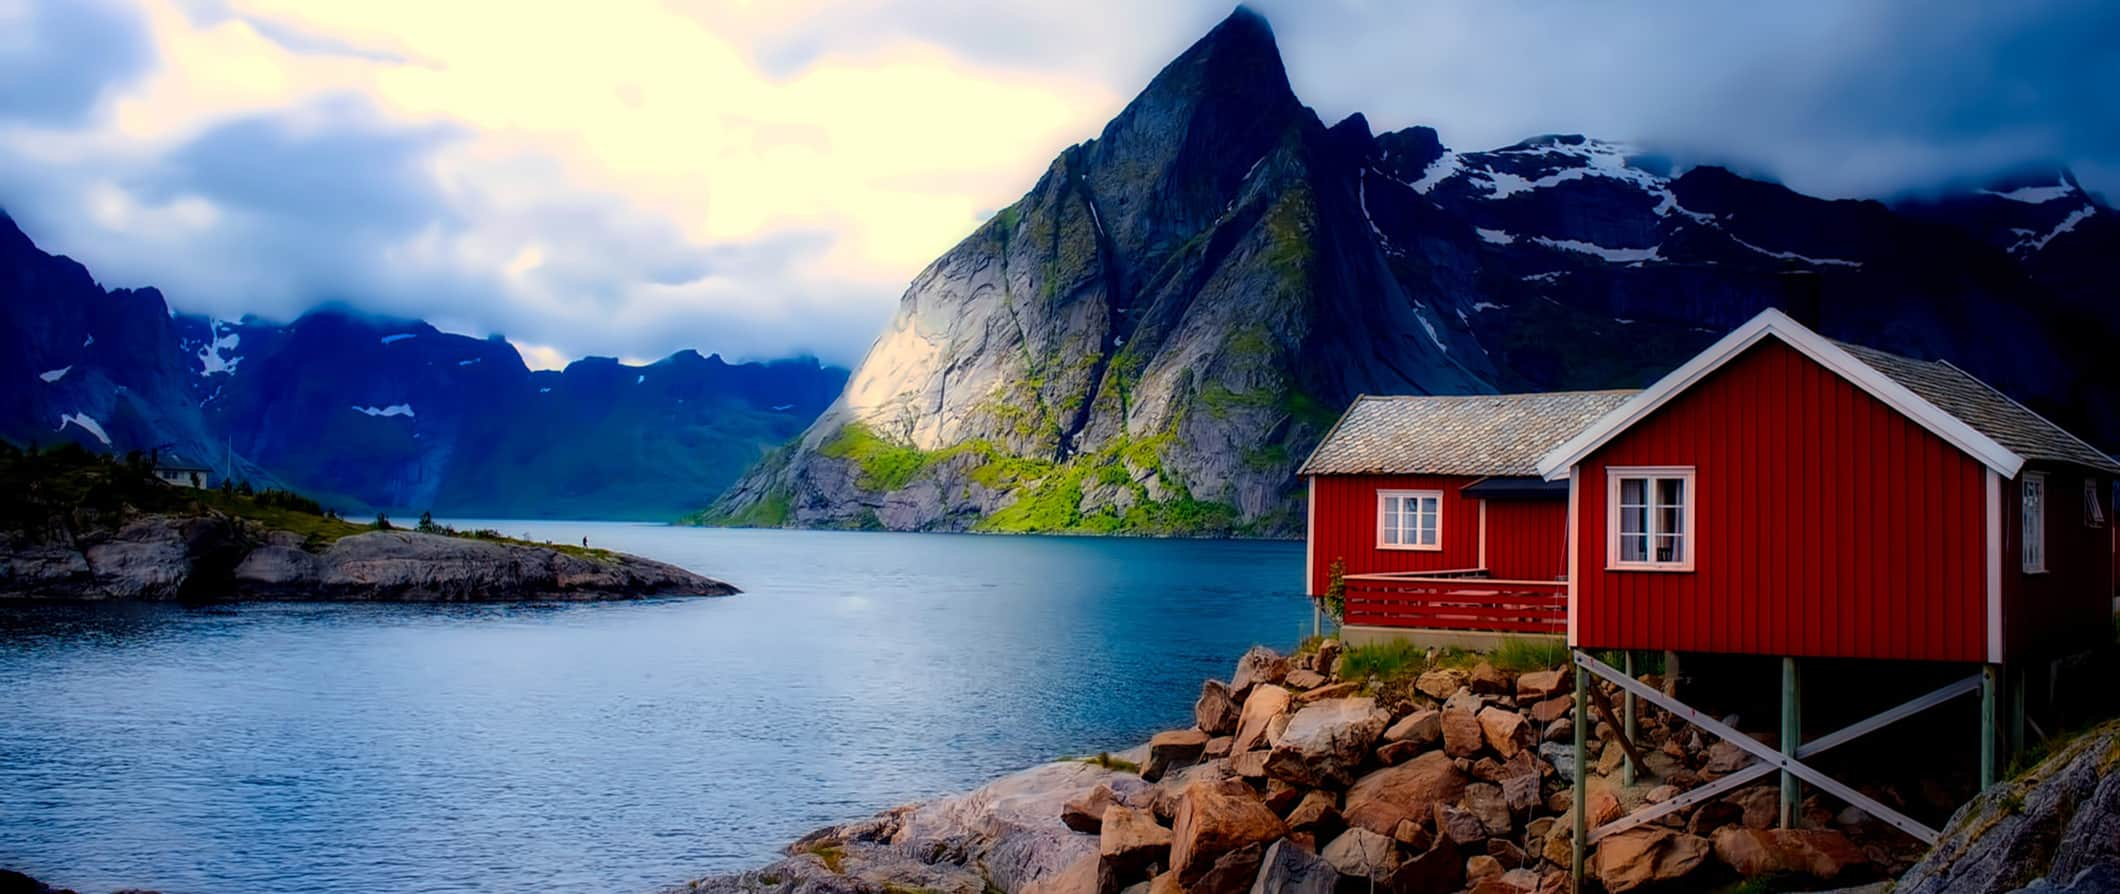 Plan A Road Trip >> Norway Travel Guide